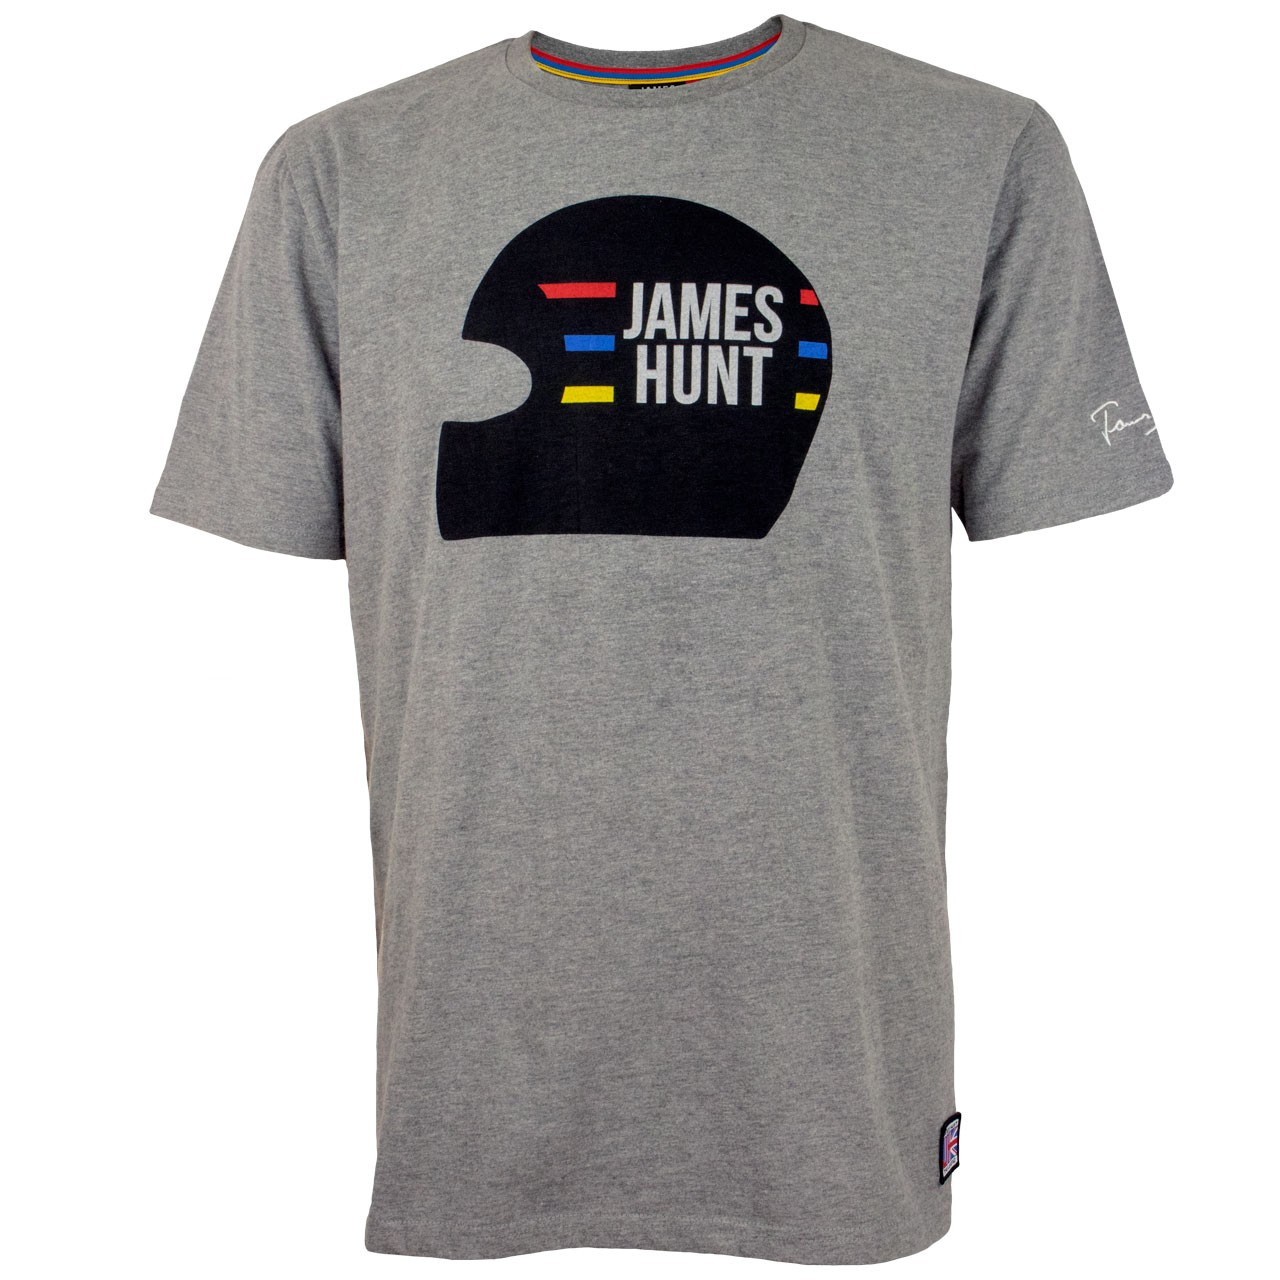 JAMES HUNT T-SHIRT NURBURGRING